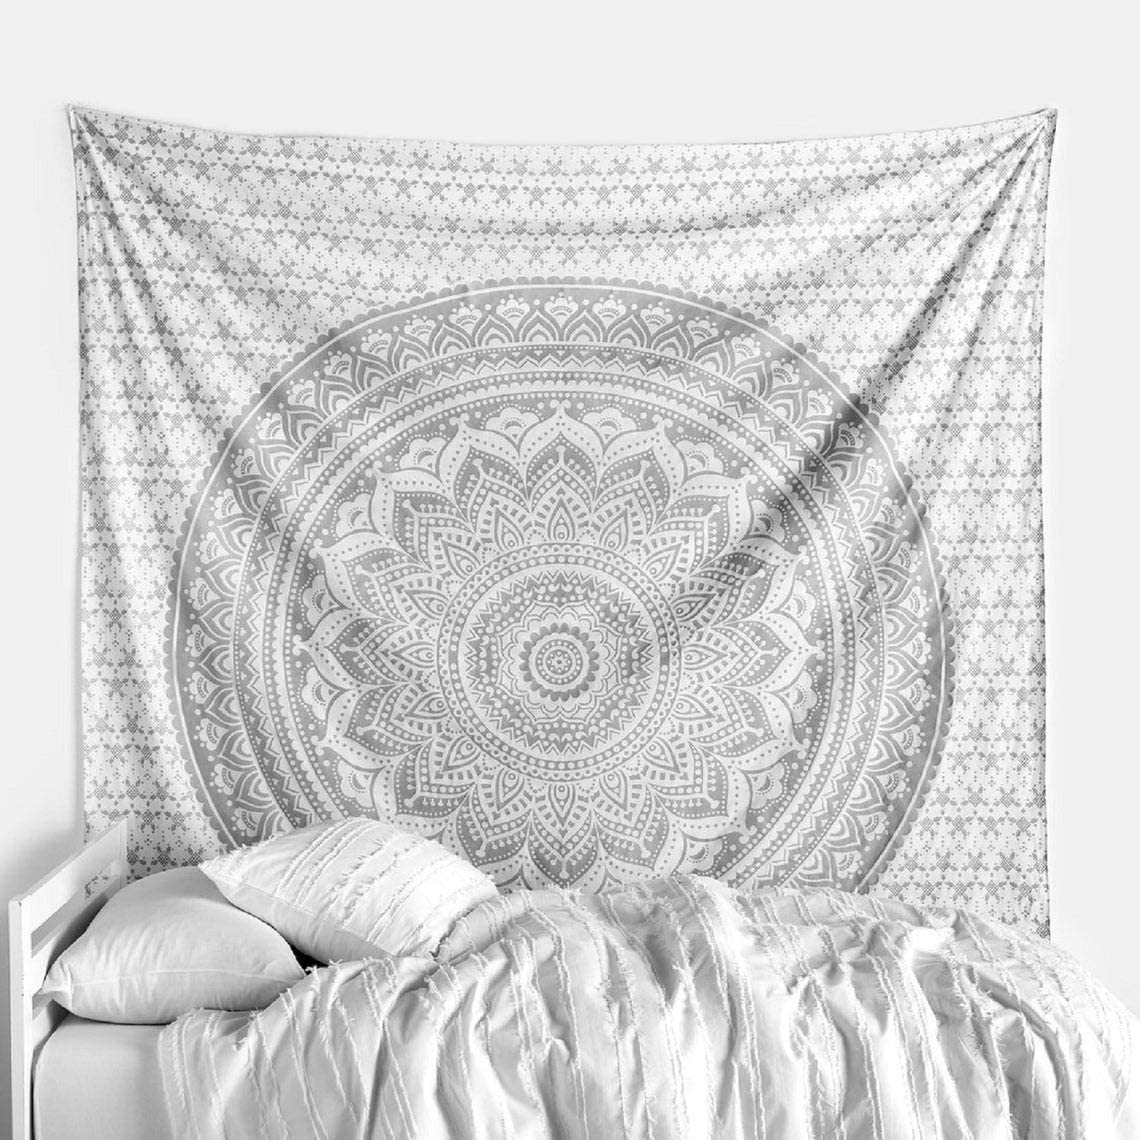 THE ART BOX Indian Mandala Wall Hanging White and Silver Trippy Tapestries Ombre Bedding Mandela Tapesty Psychedelic Vertical Large Indian King Pretty Throw Blanket